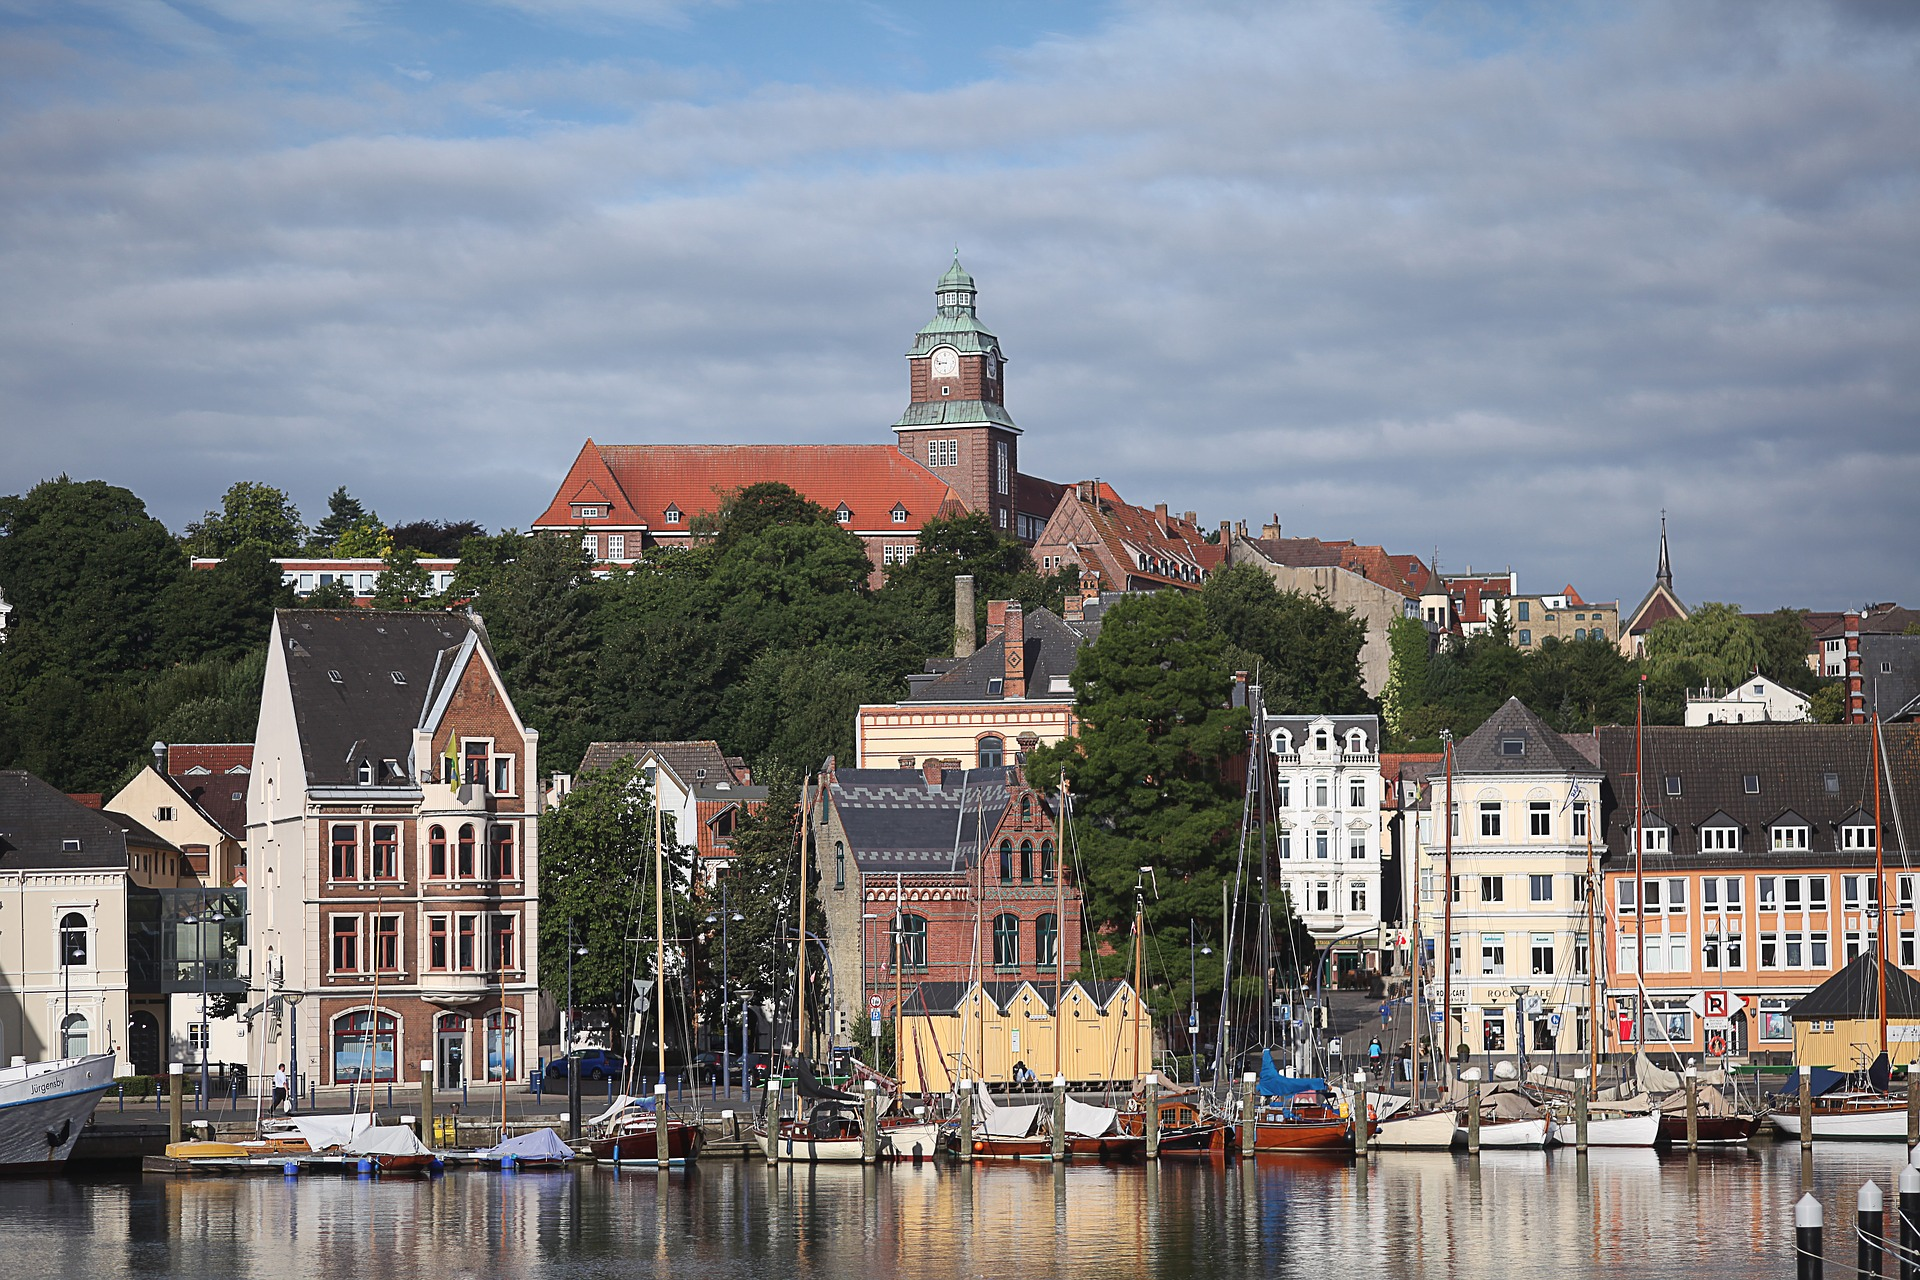 EFA General Assembly will be held in Flensburg on 01st – 03rd October 2020